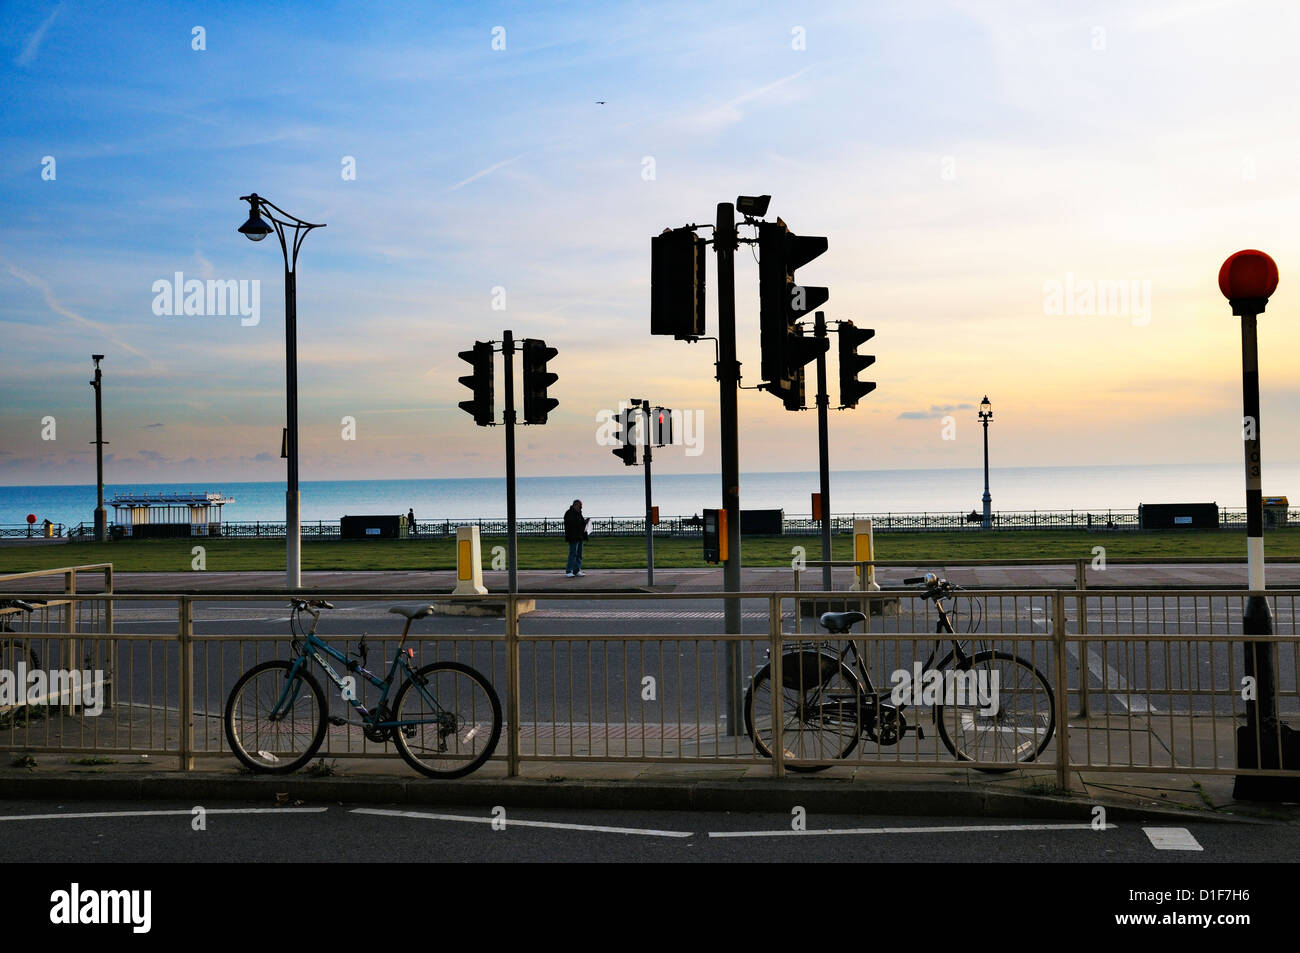 Traffic lights and road crossing at sunset, Brighton, East Sussex, UK - Stock Image